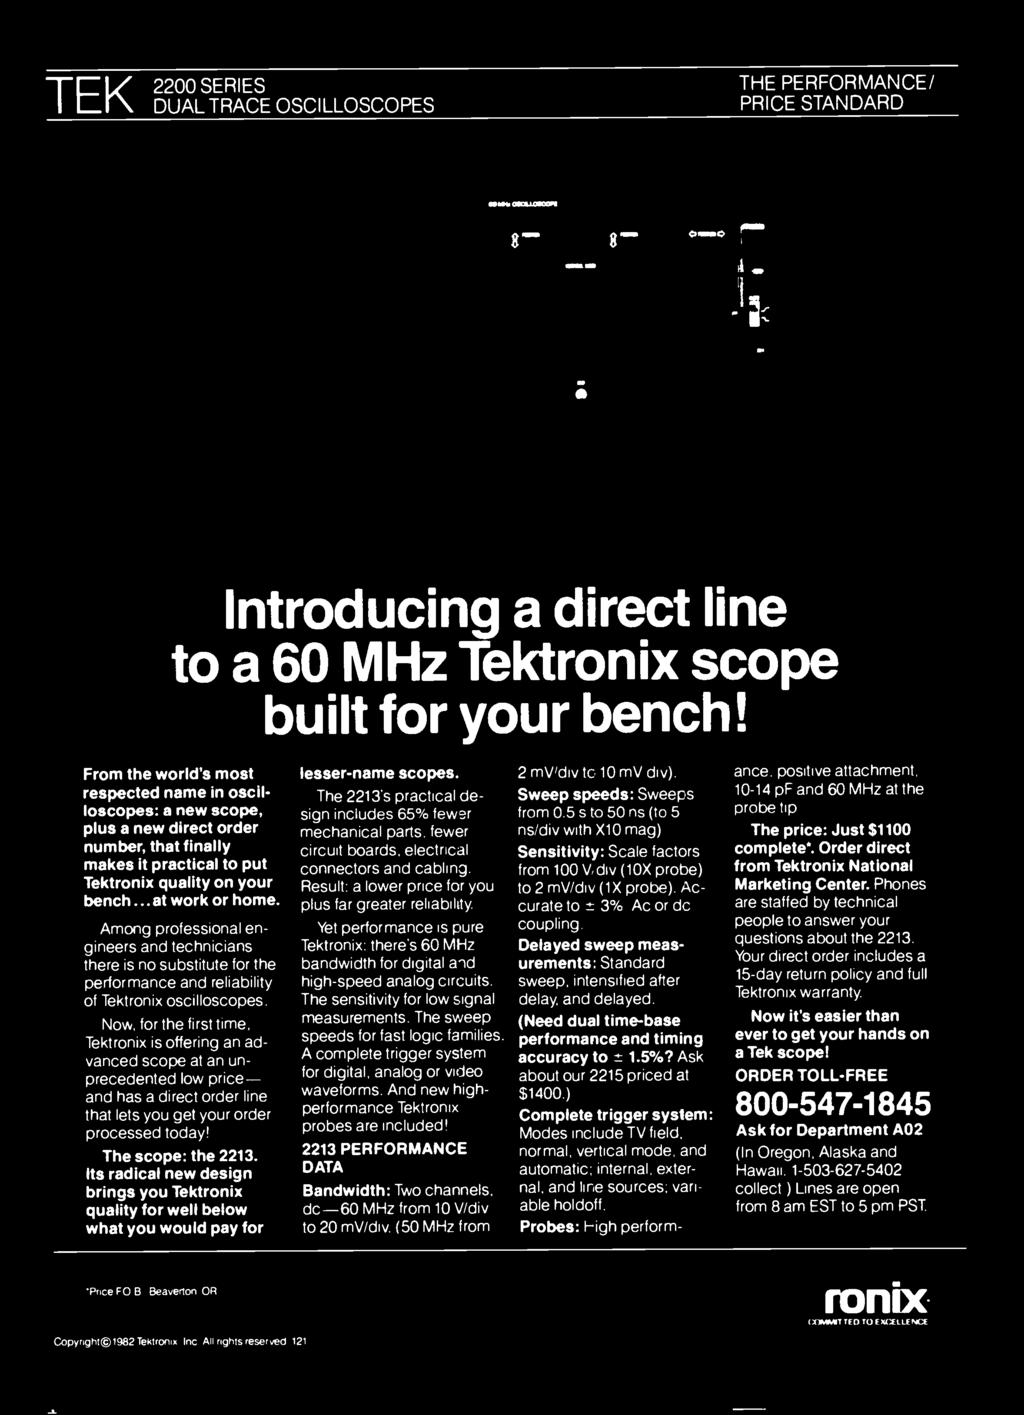 Coniesg Worlds Largest Selling Electronics Magazine May 1982 1 Pdf Radikalsac2kusbcablewiringdiagramnormalusbcable From The Most Respected Name In Oscilloscopes A New Scope Plus